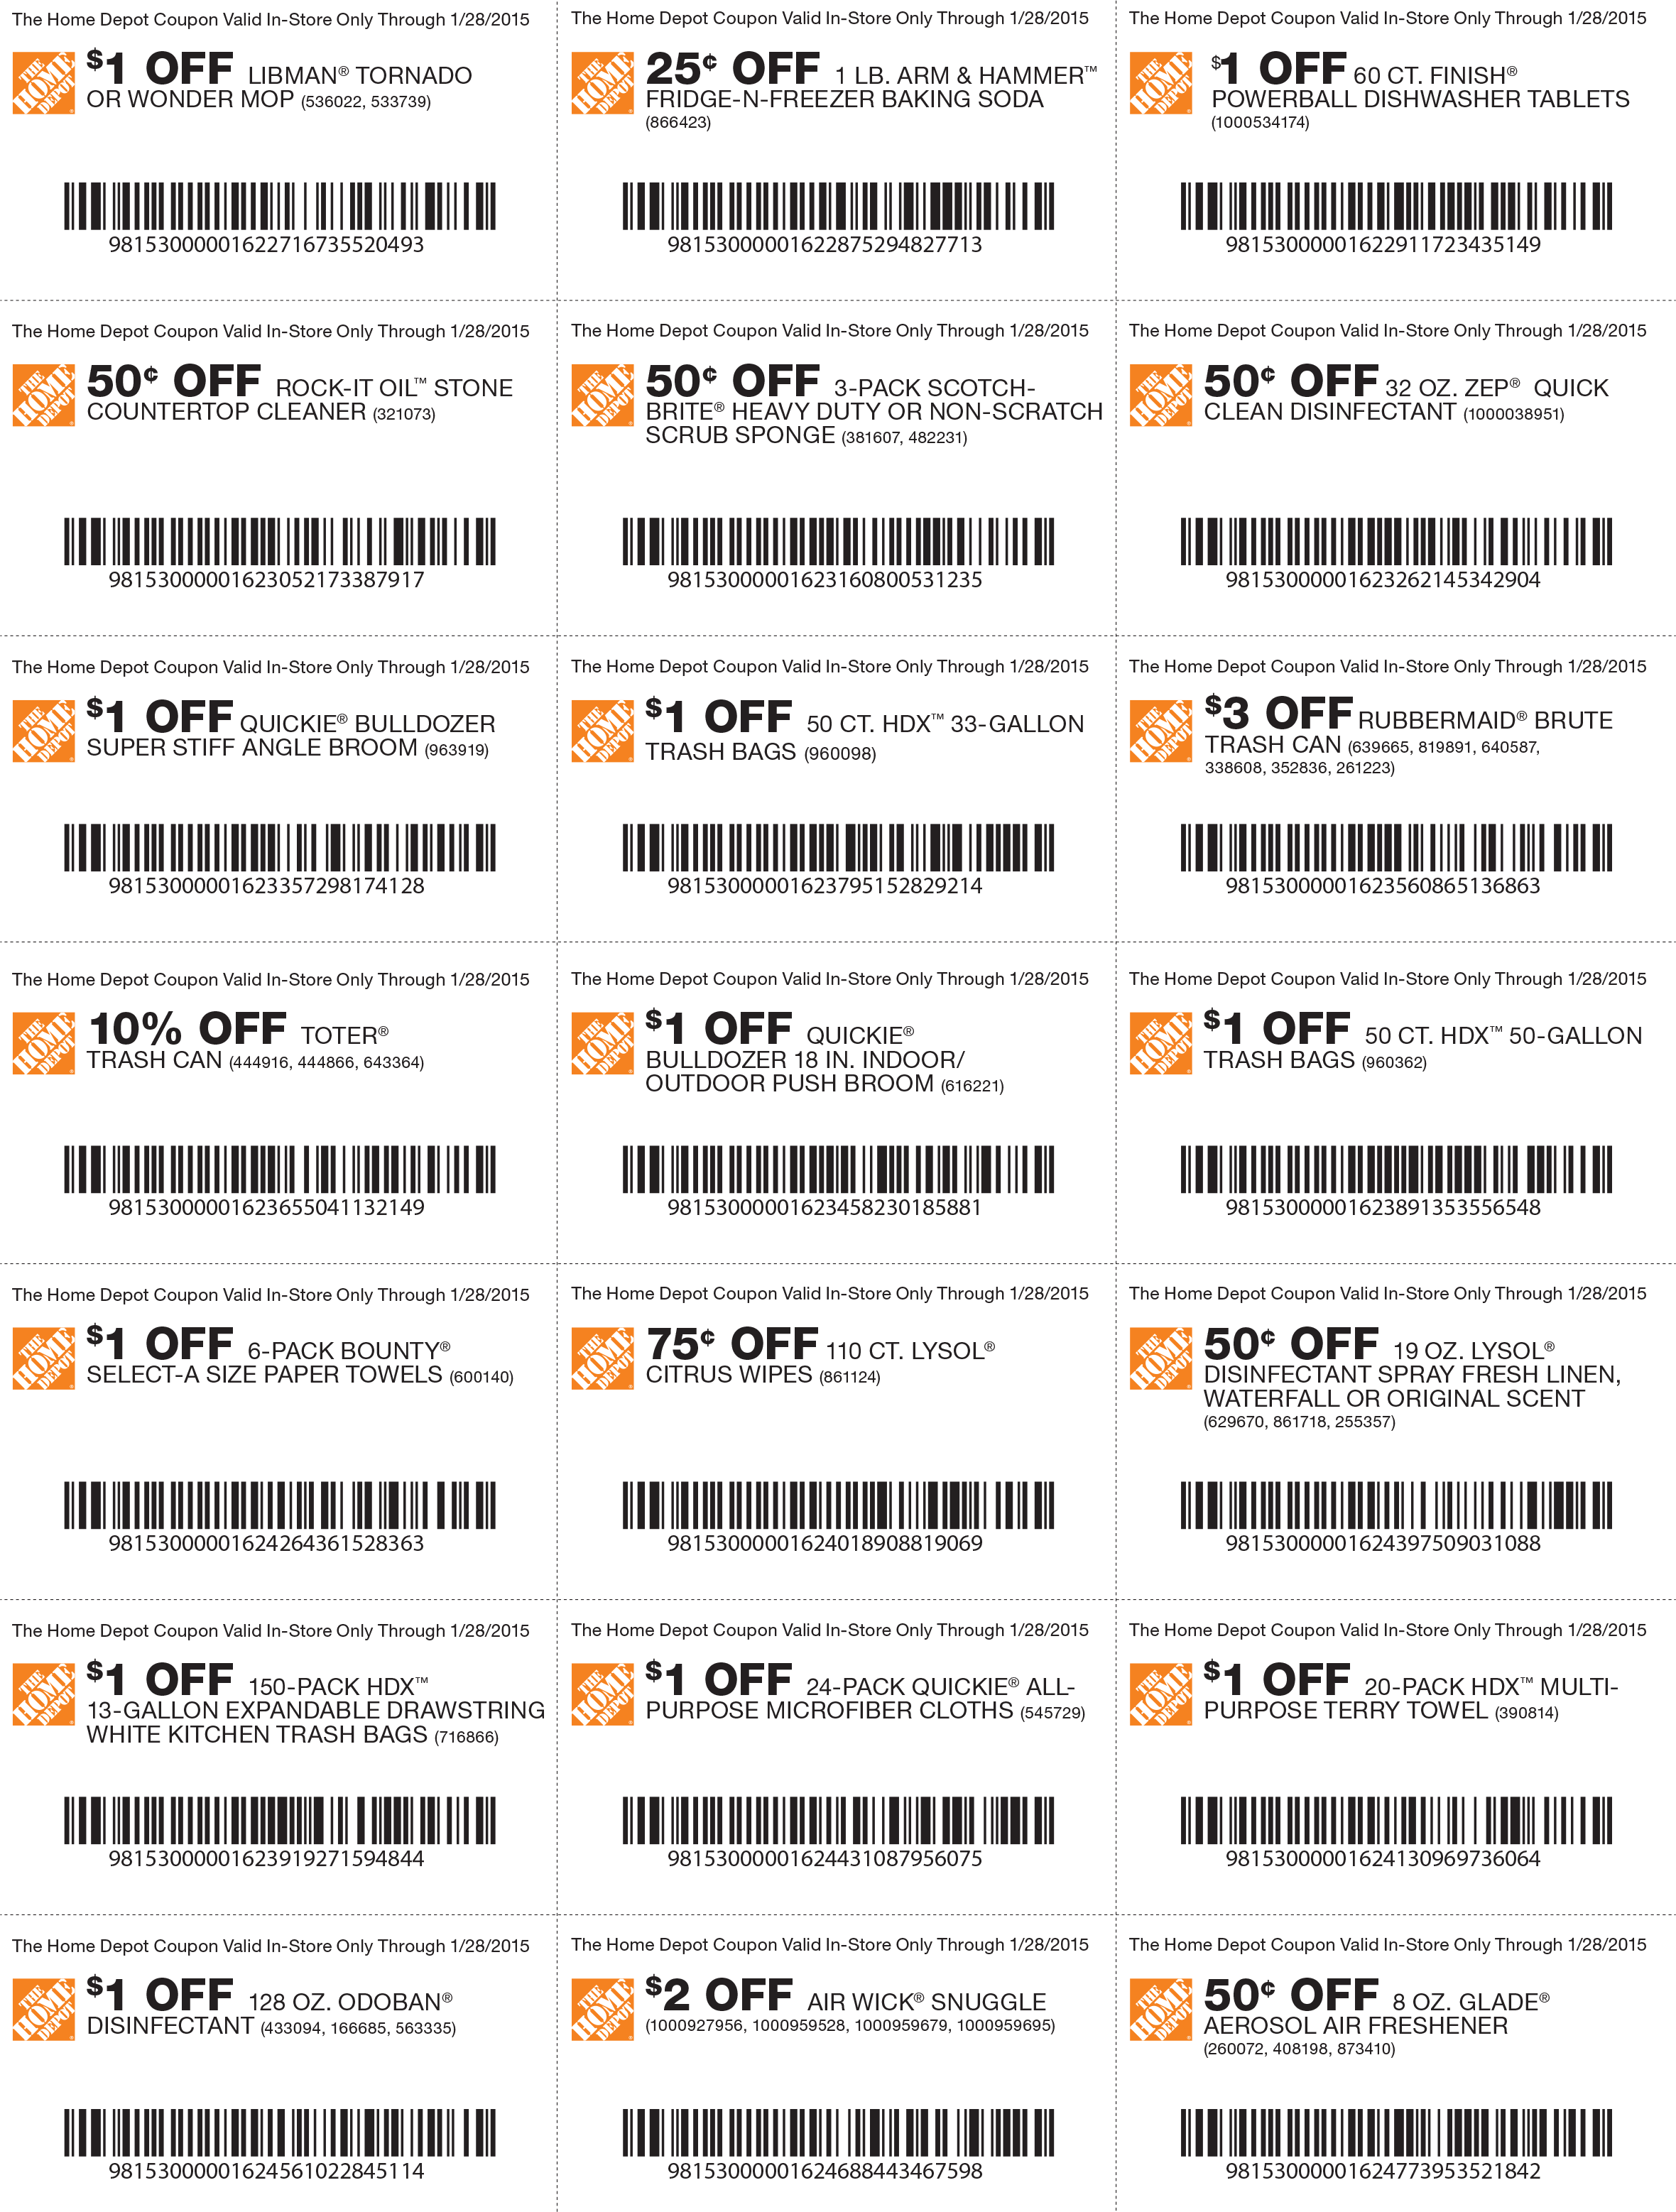 Homedepot coupon codes